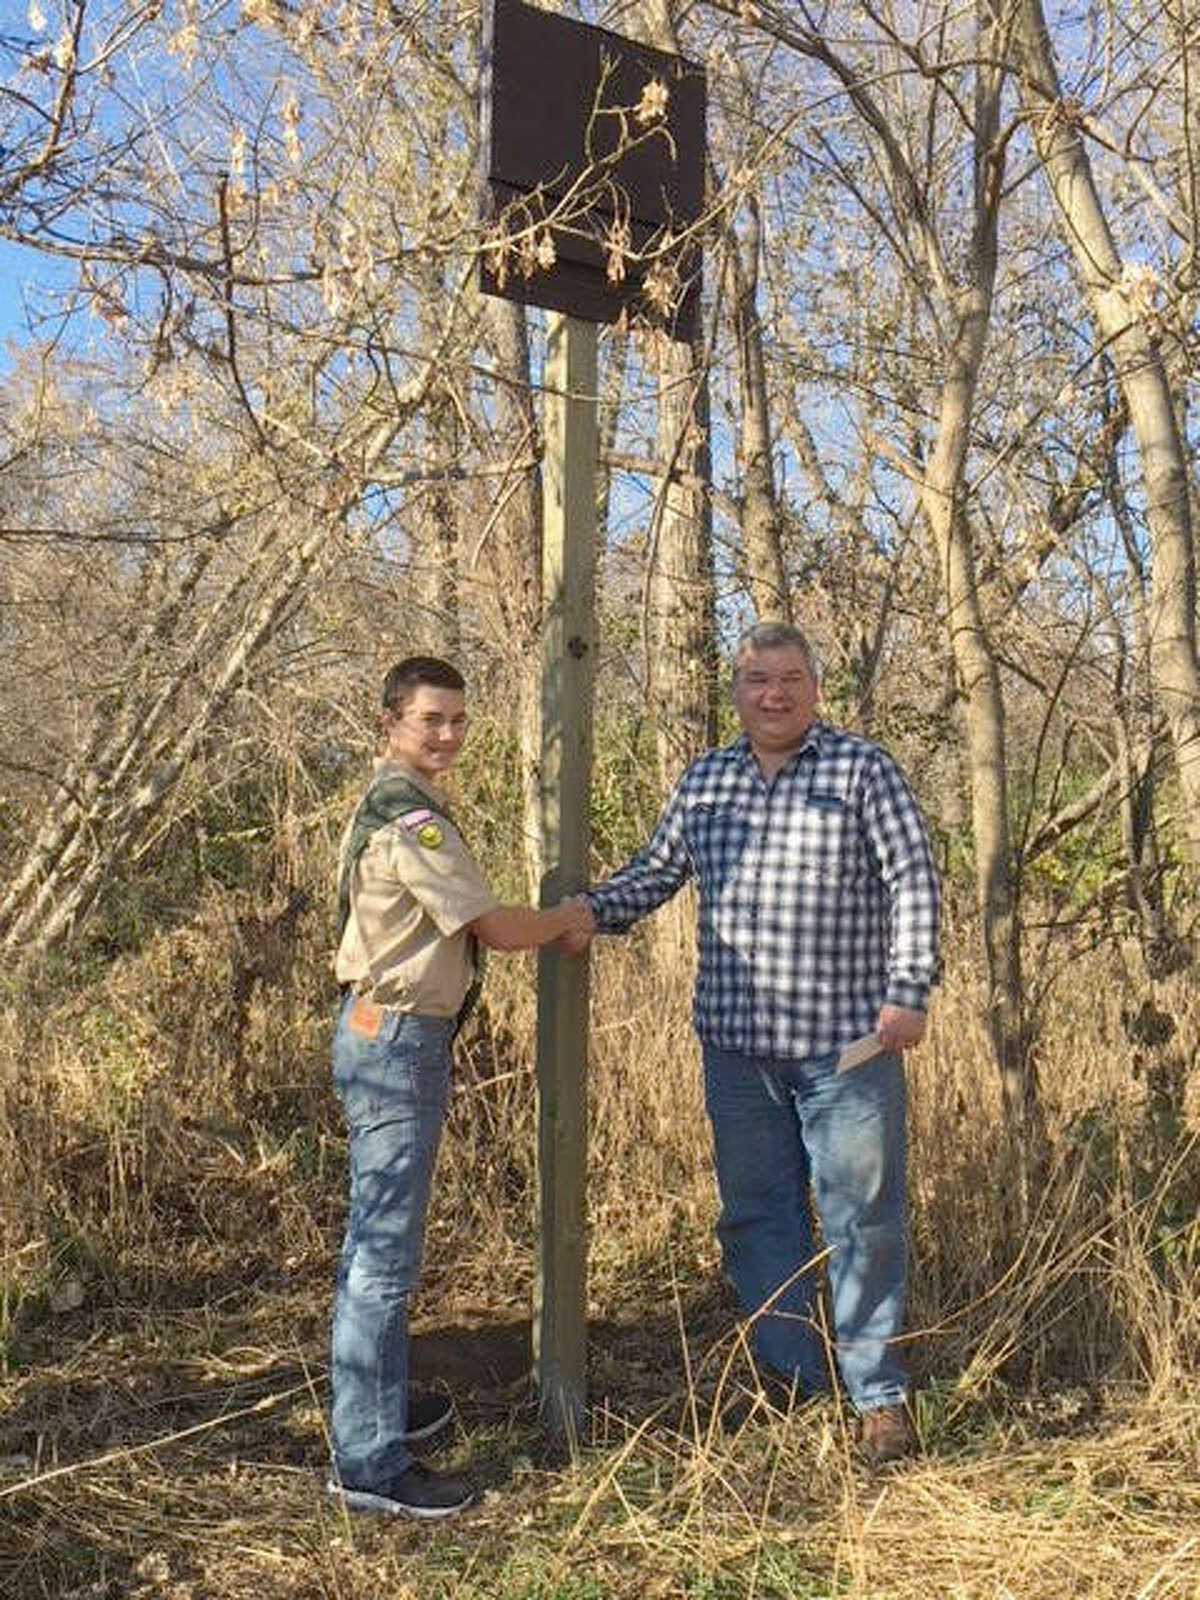 Bethalto Mayor Alan Winslow shakes the hand of local Boy Scout Ethan Scott, who recently installed three new bat houses at the Bethalto Sports Complex as part of his Eagle Scout project.